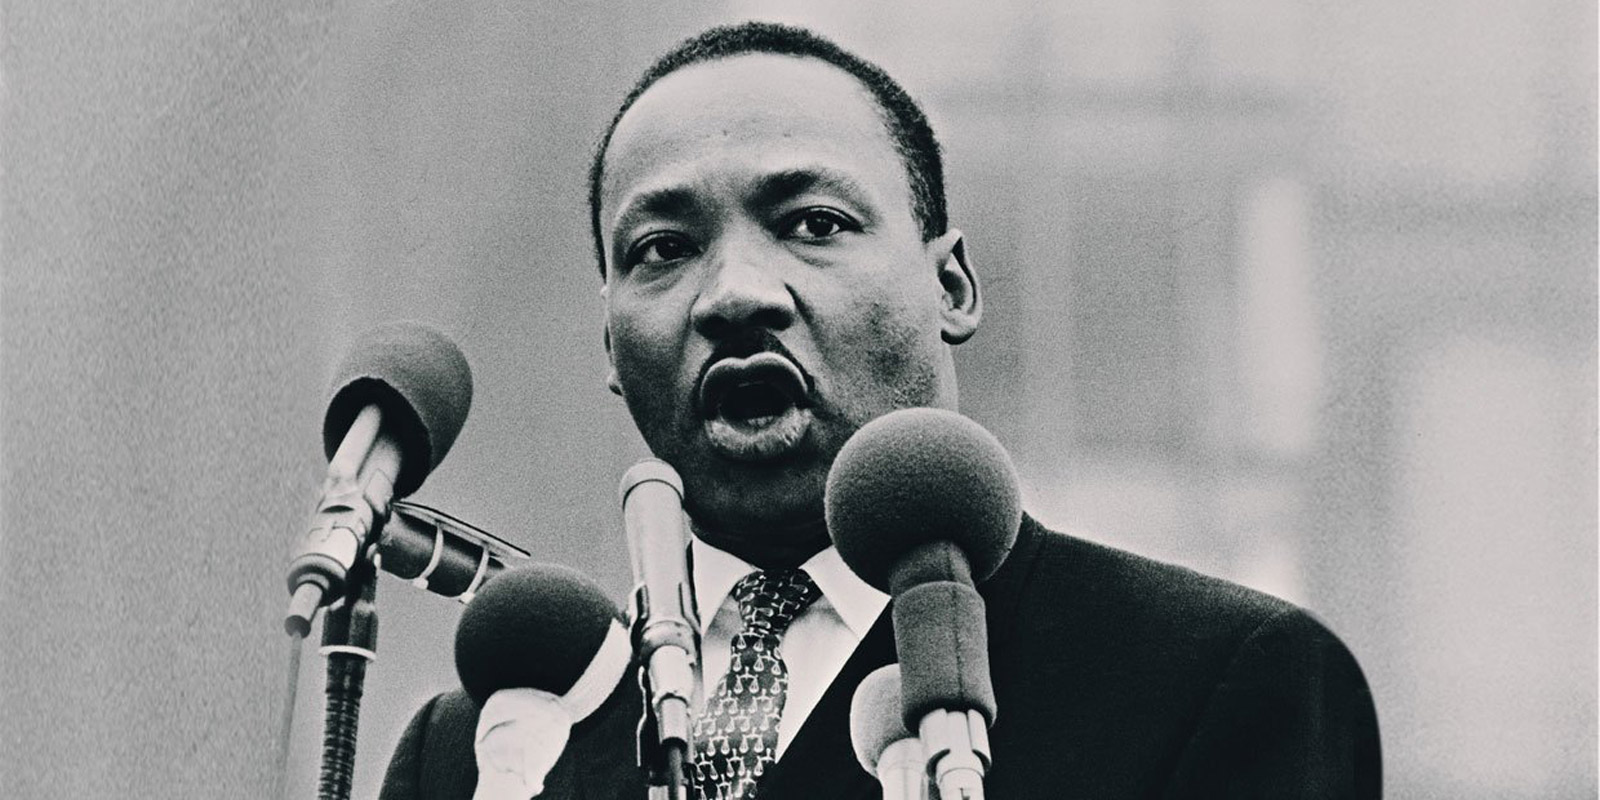 nonviolence martin luther king jr Dr martin luther king, jr's less than thirteen years of nonviolent leadership ended abruptly and tragically on april 4th, 1968, when he was assassinated at the lorraine motel in memphis, tennessee.